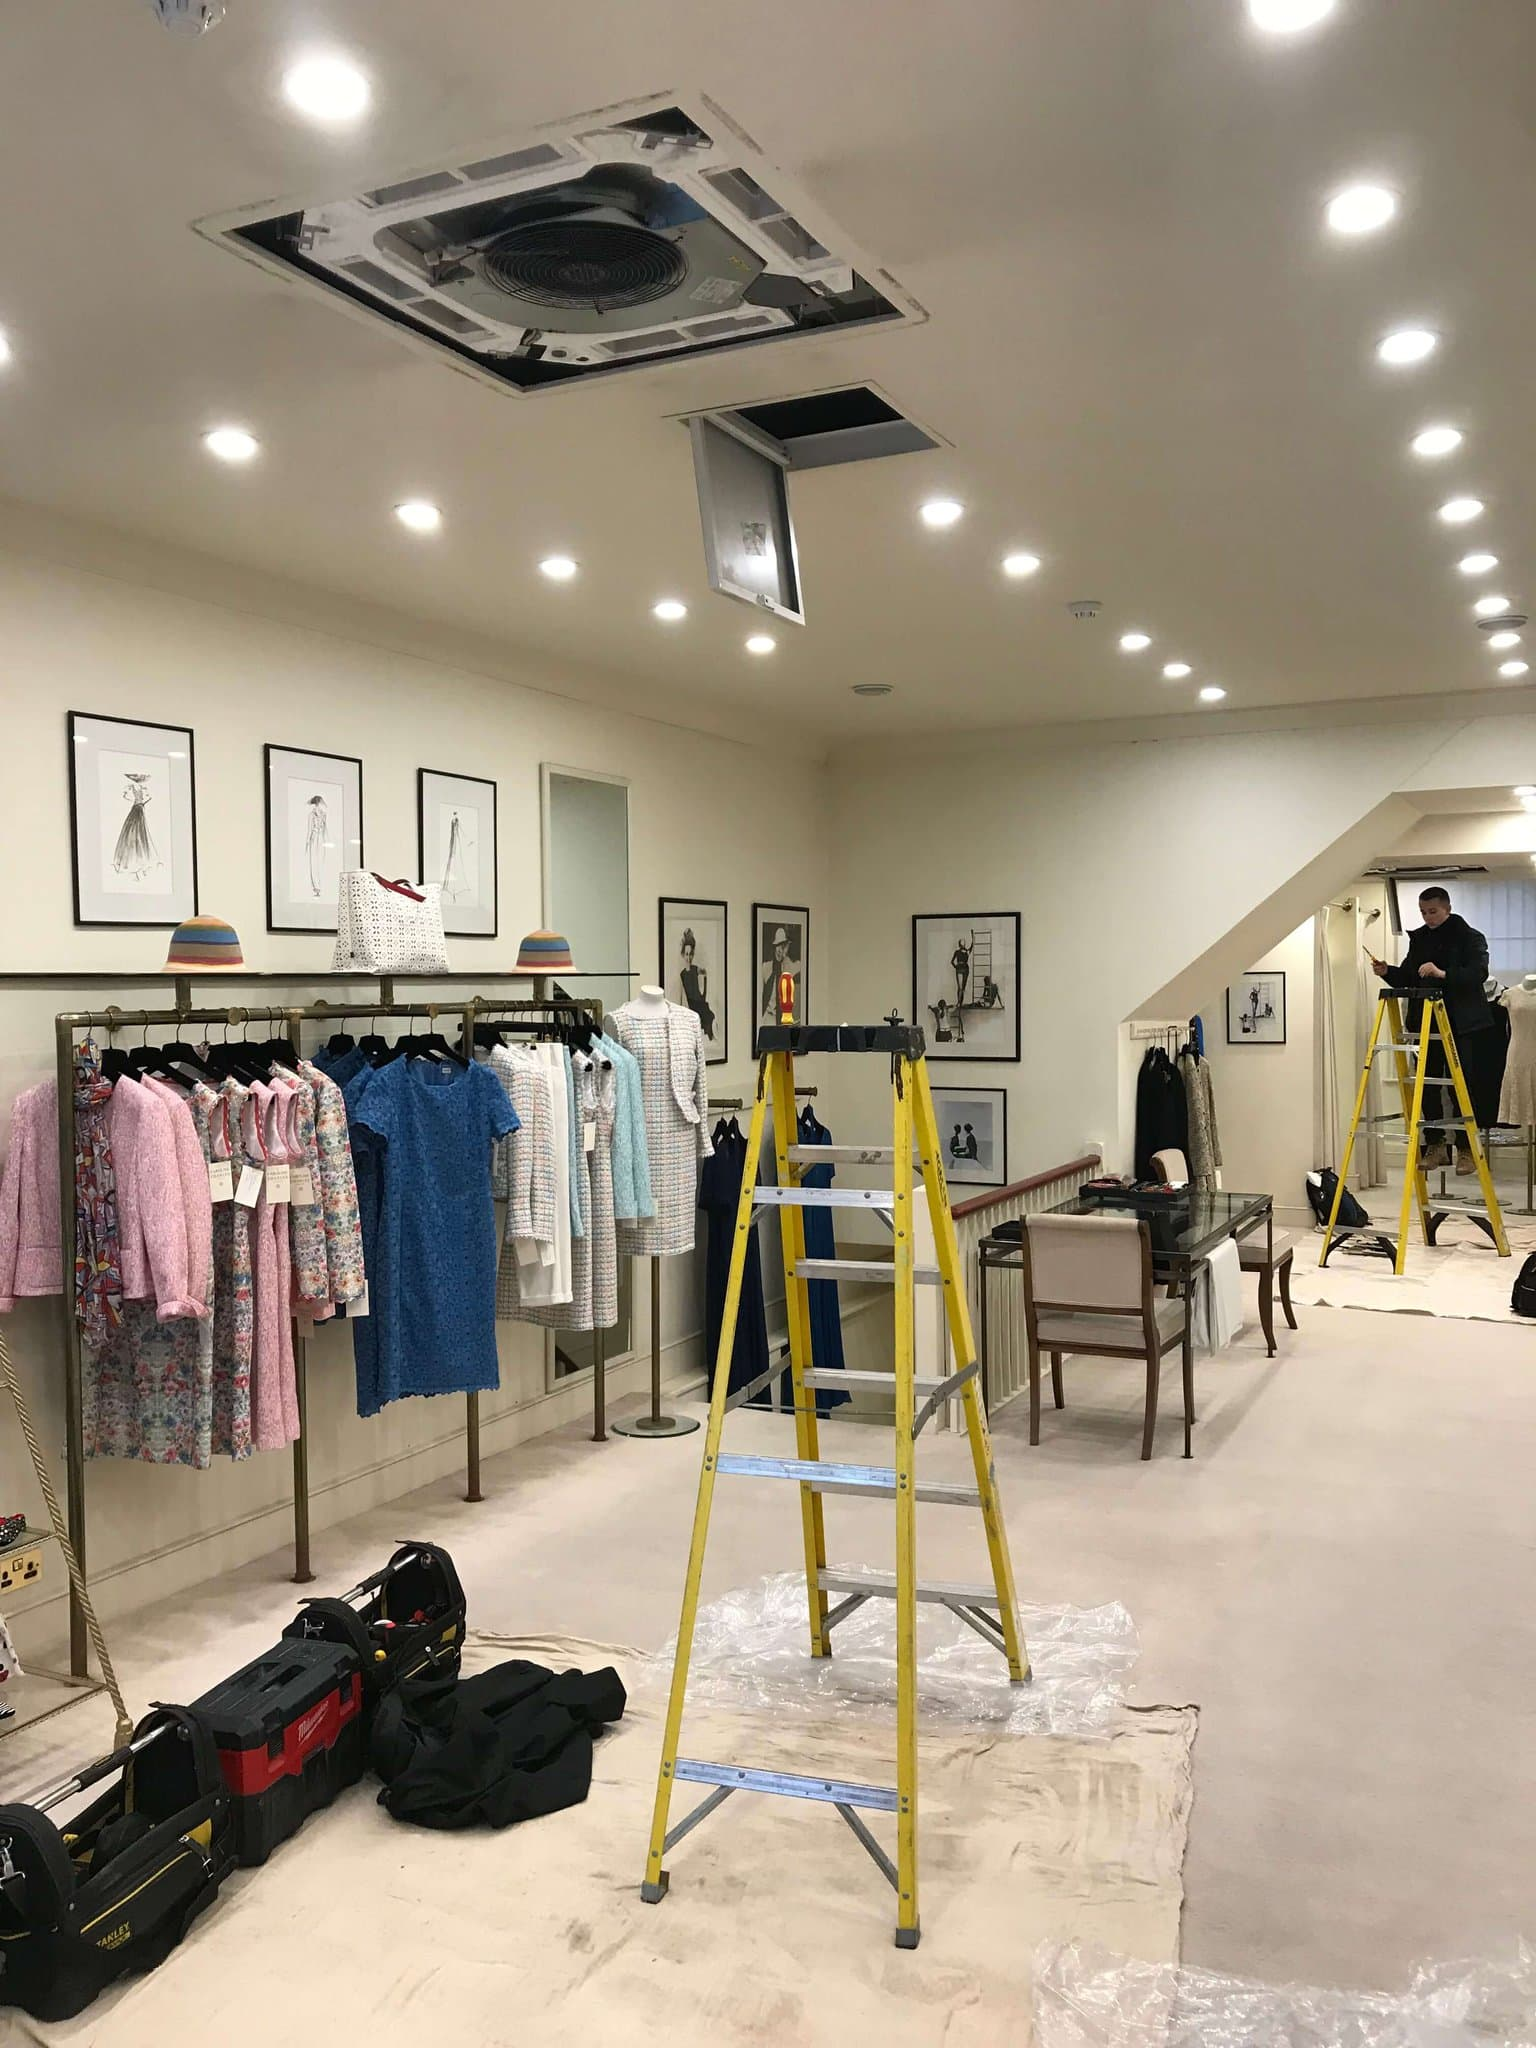 A ceiling air conditioning unit being installed in a fashion retail store